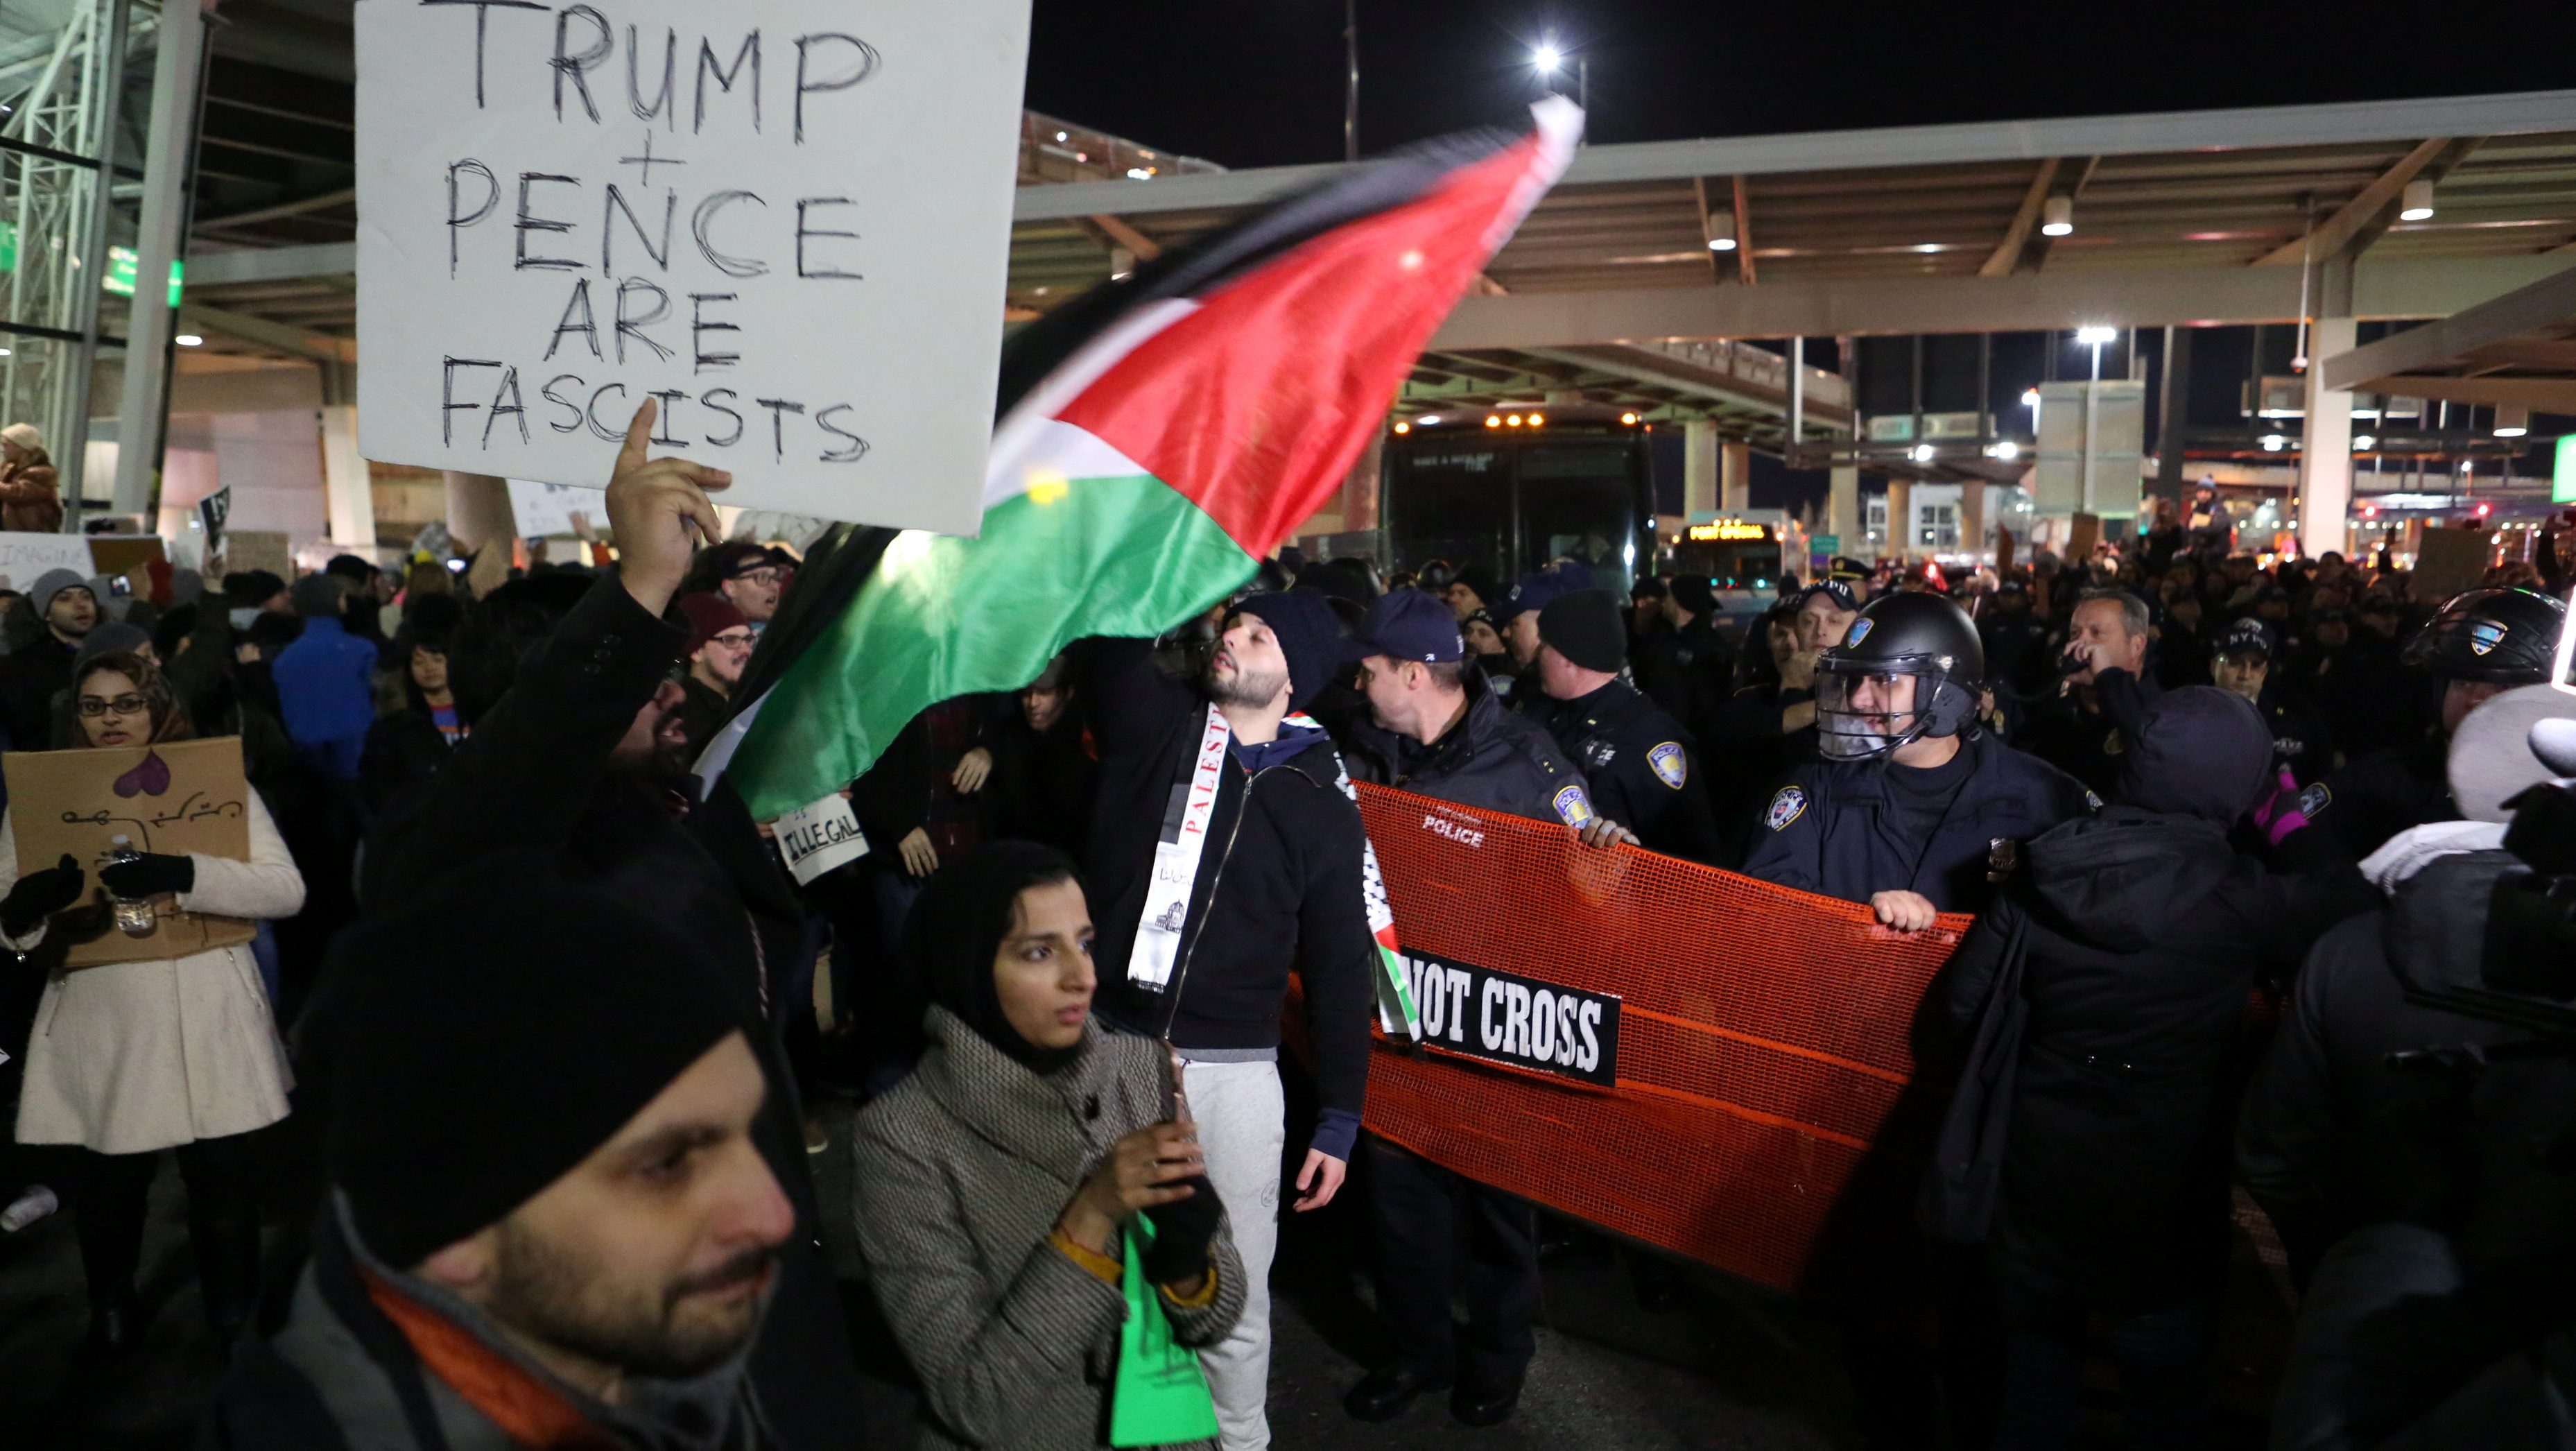 Police corral protesters who gathered in opposition to U.S. President Donald Trump's ban on immigration and travel outside Terminal 4 at JFK airport in Queens